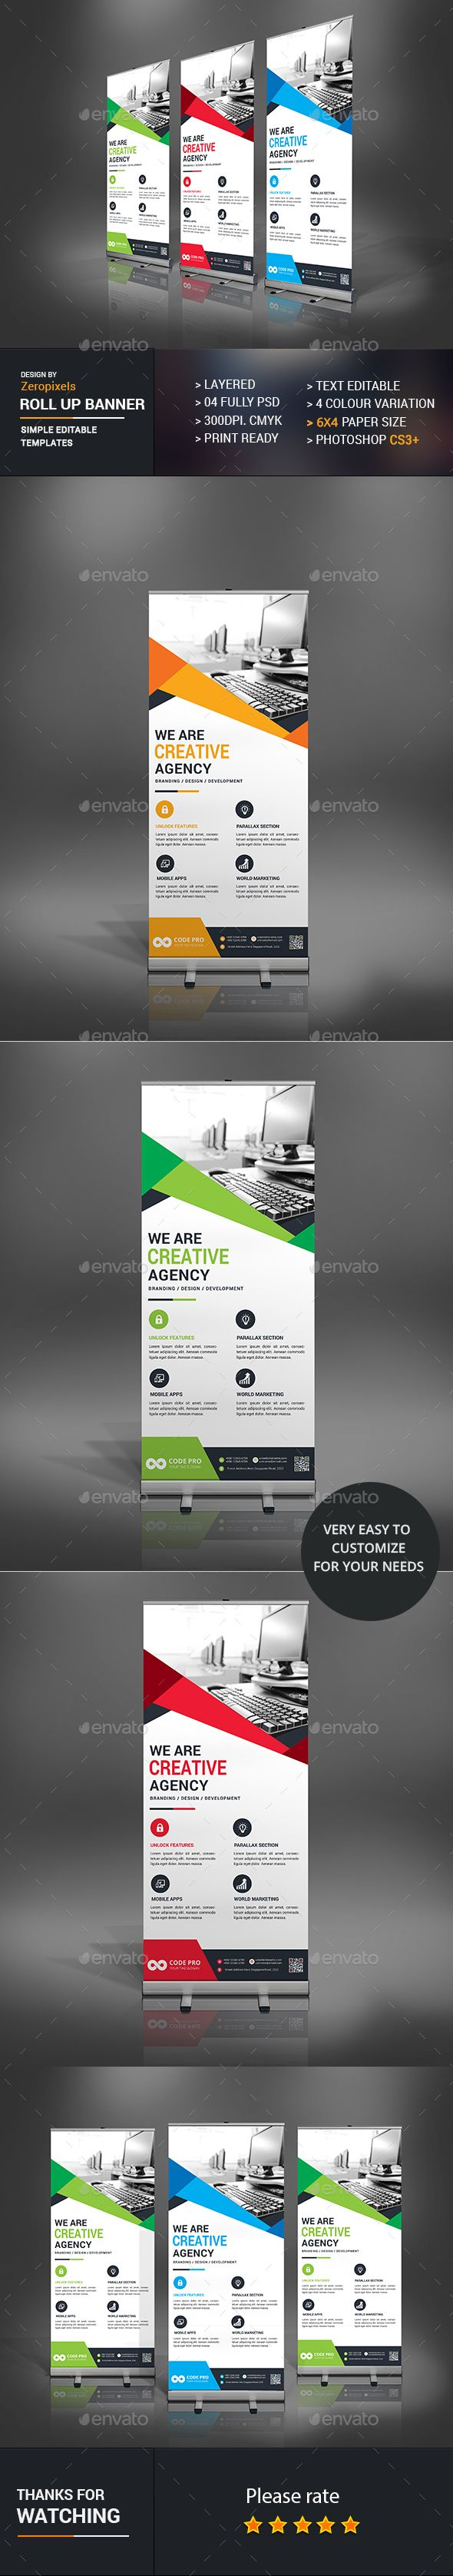 Roll Up Banner Design Template - Signage Print Template PSD. Download here: http://graphicriver.net/item/roll-up-banner/16893685?ref=yinkira